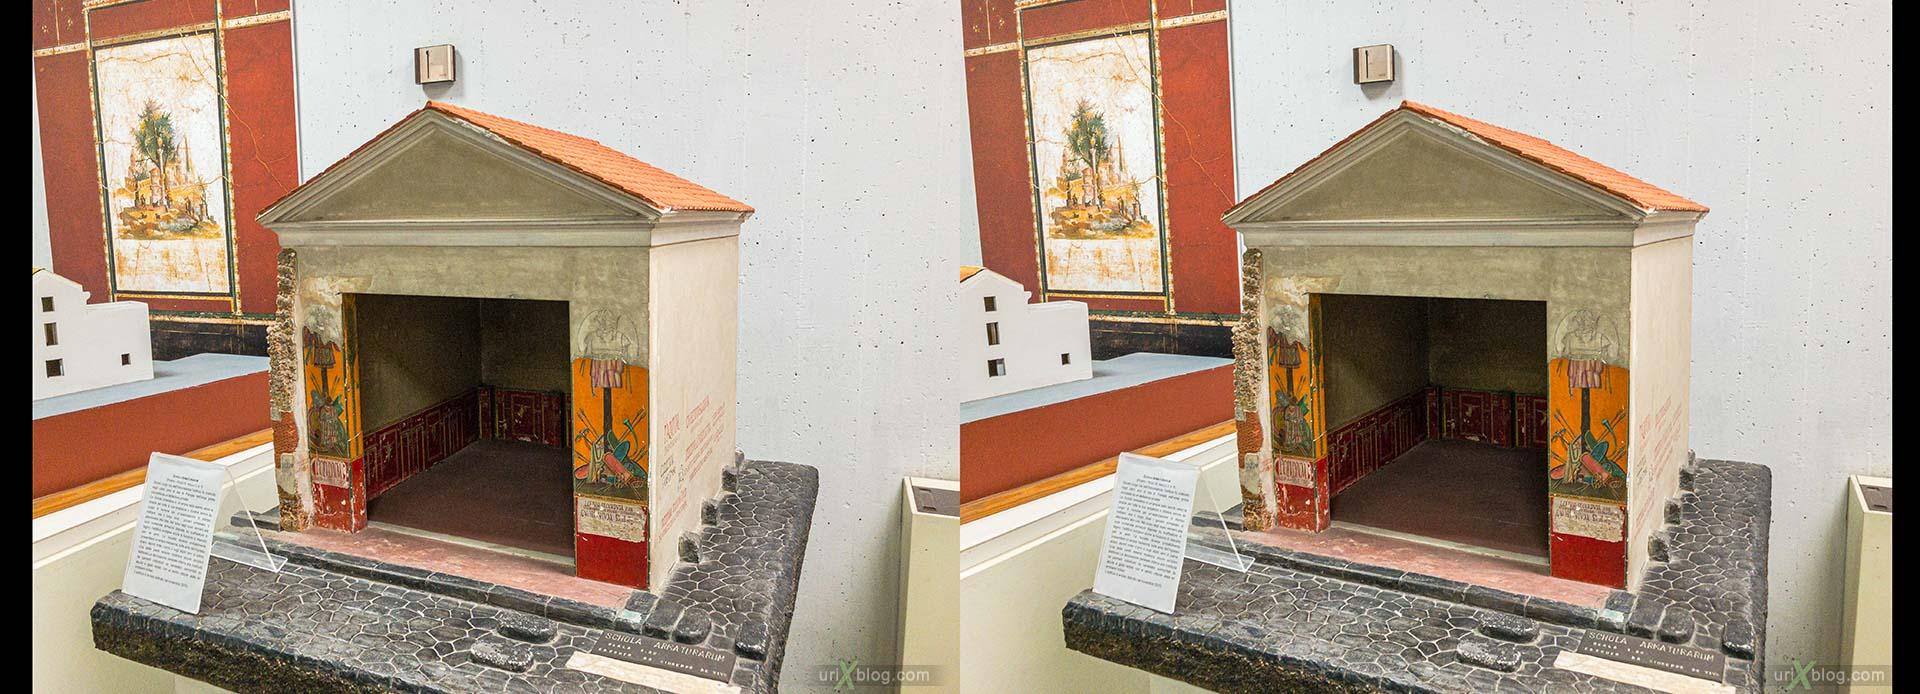 model, Museum, excavations, villa Regina, Boscoreale, Pompei, Italy, 3D, stereo pair, cross-eyed, crossview, cross view stereo pair, stereoscopic